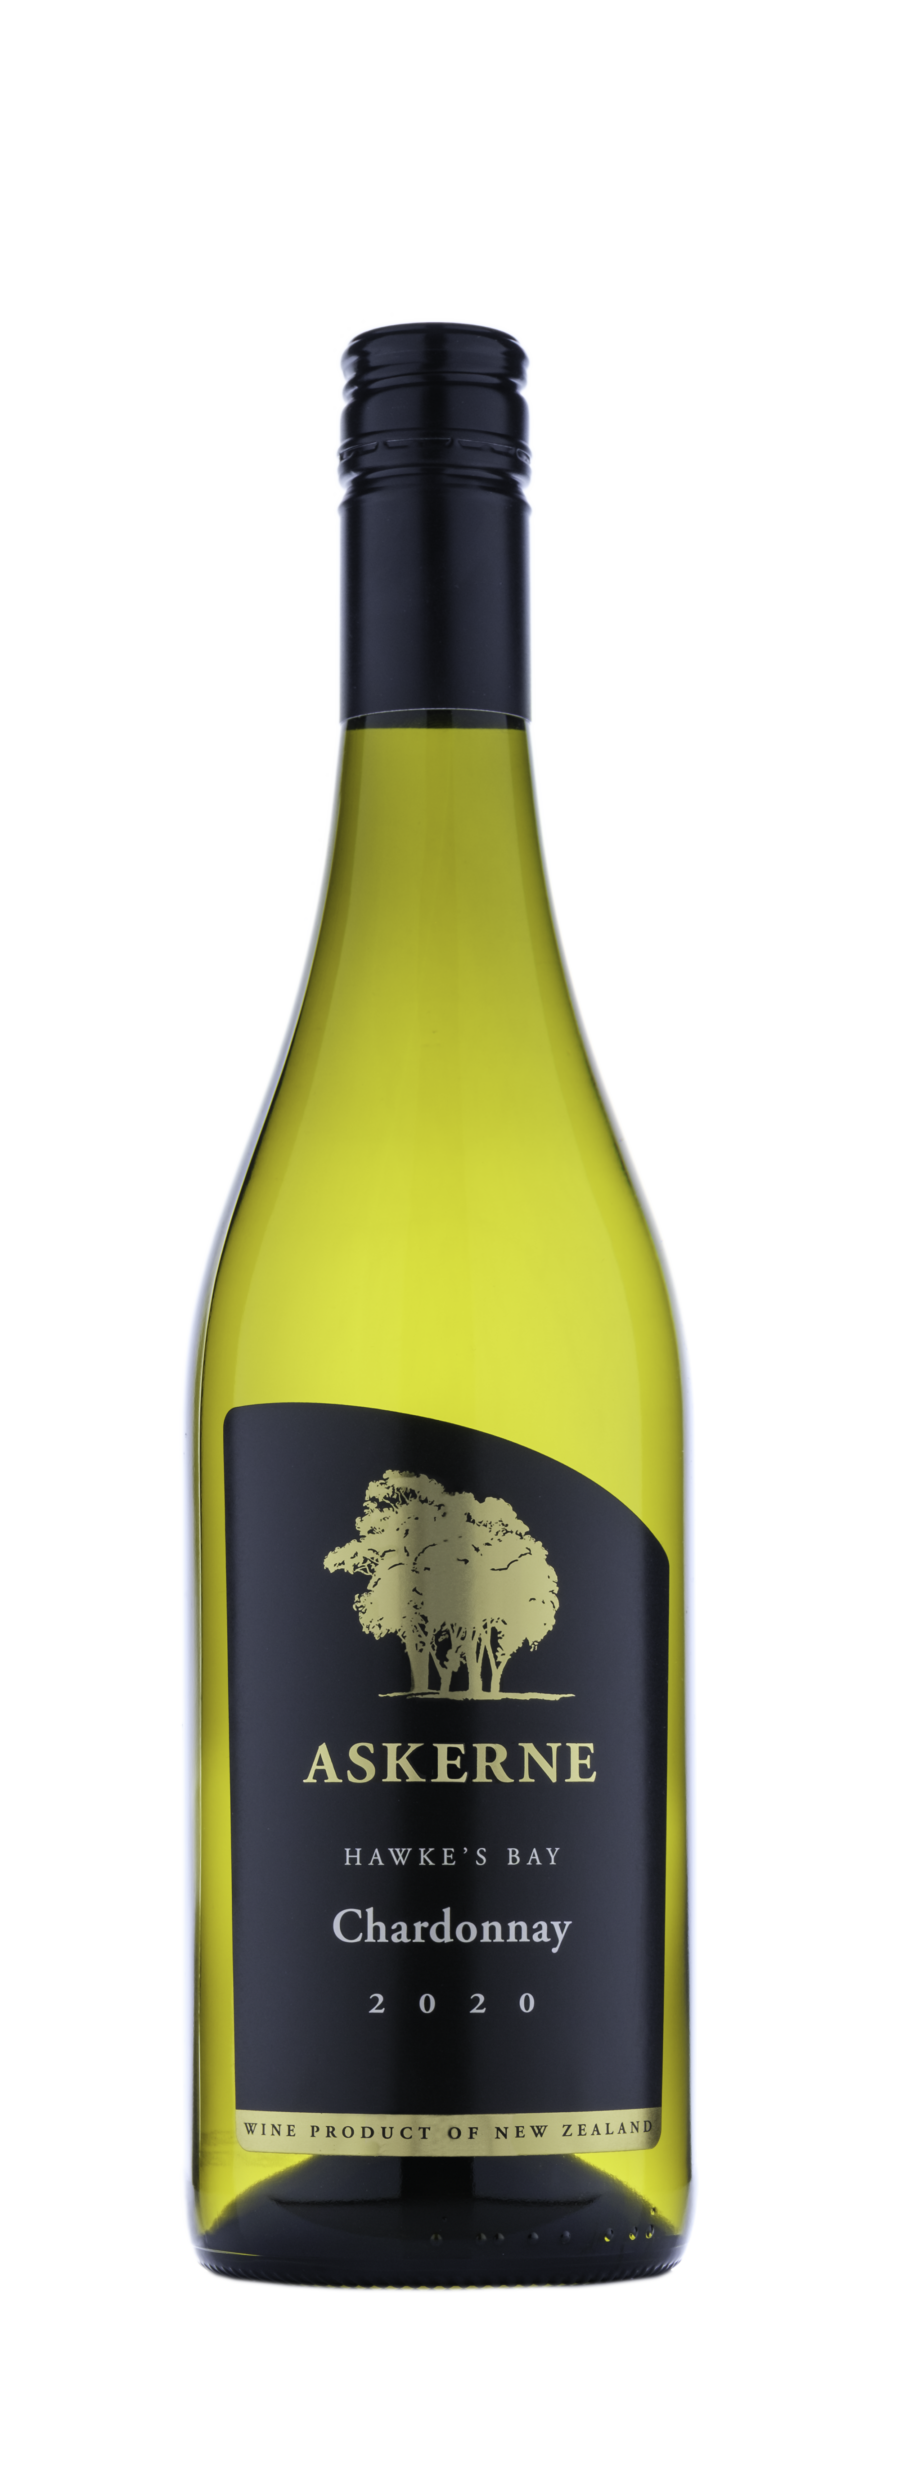 Award winning Boutique Family owned Askerne Chardonnay 2020